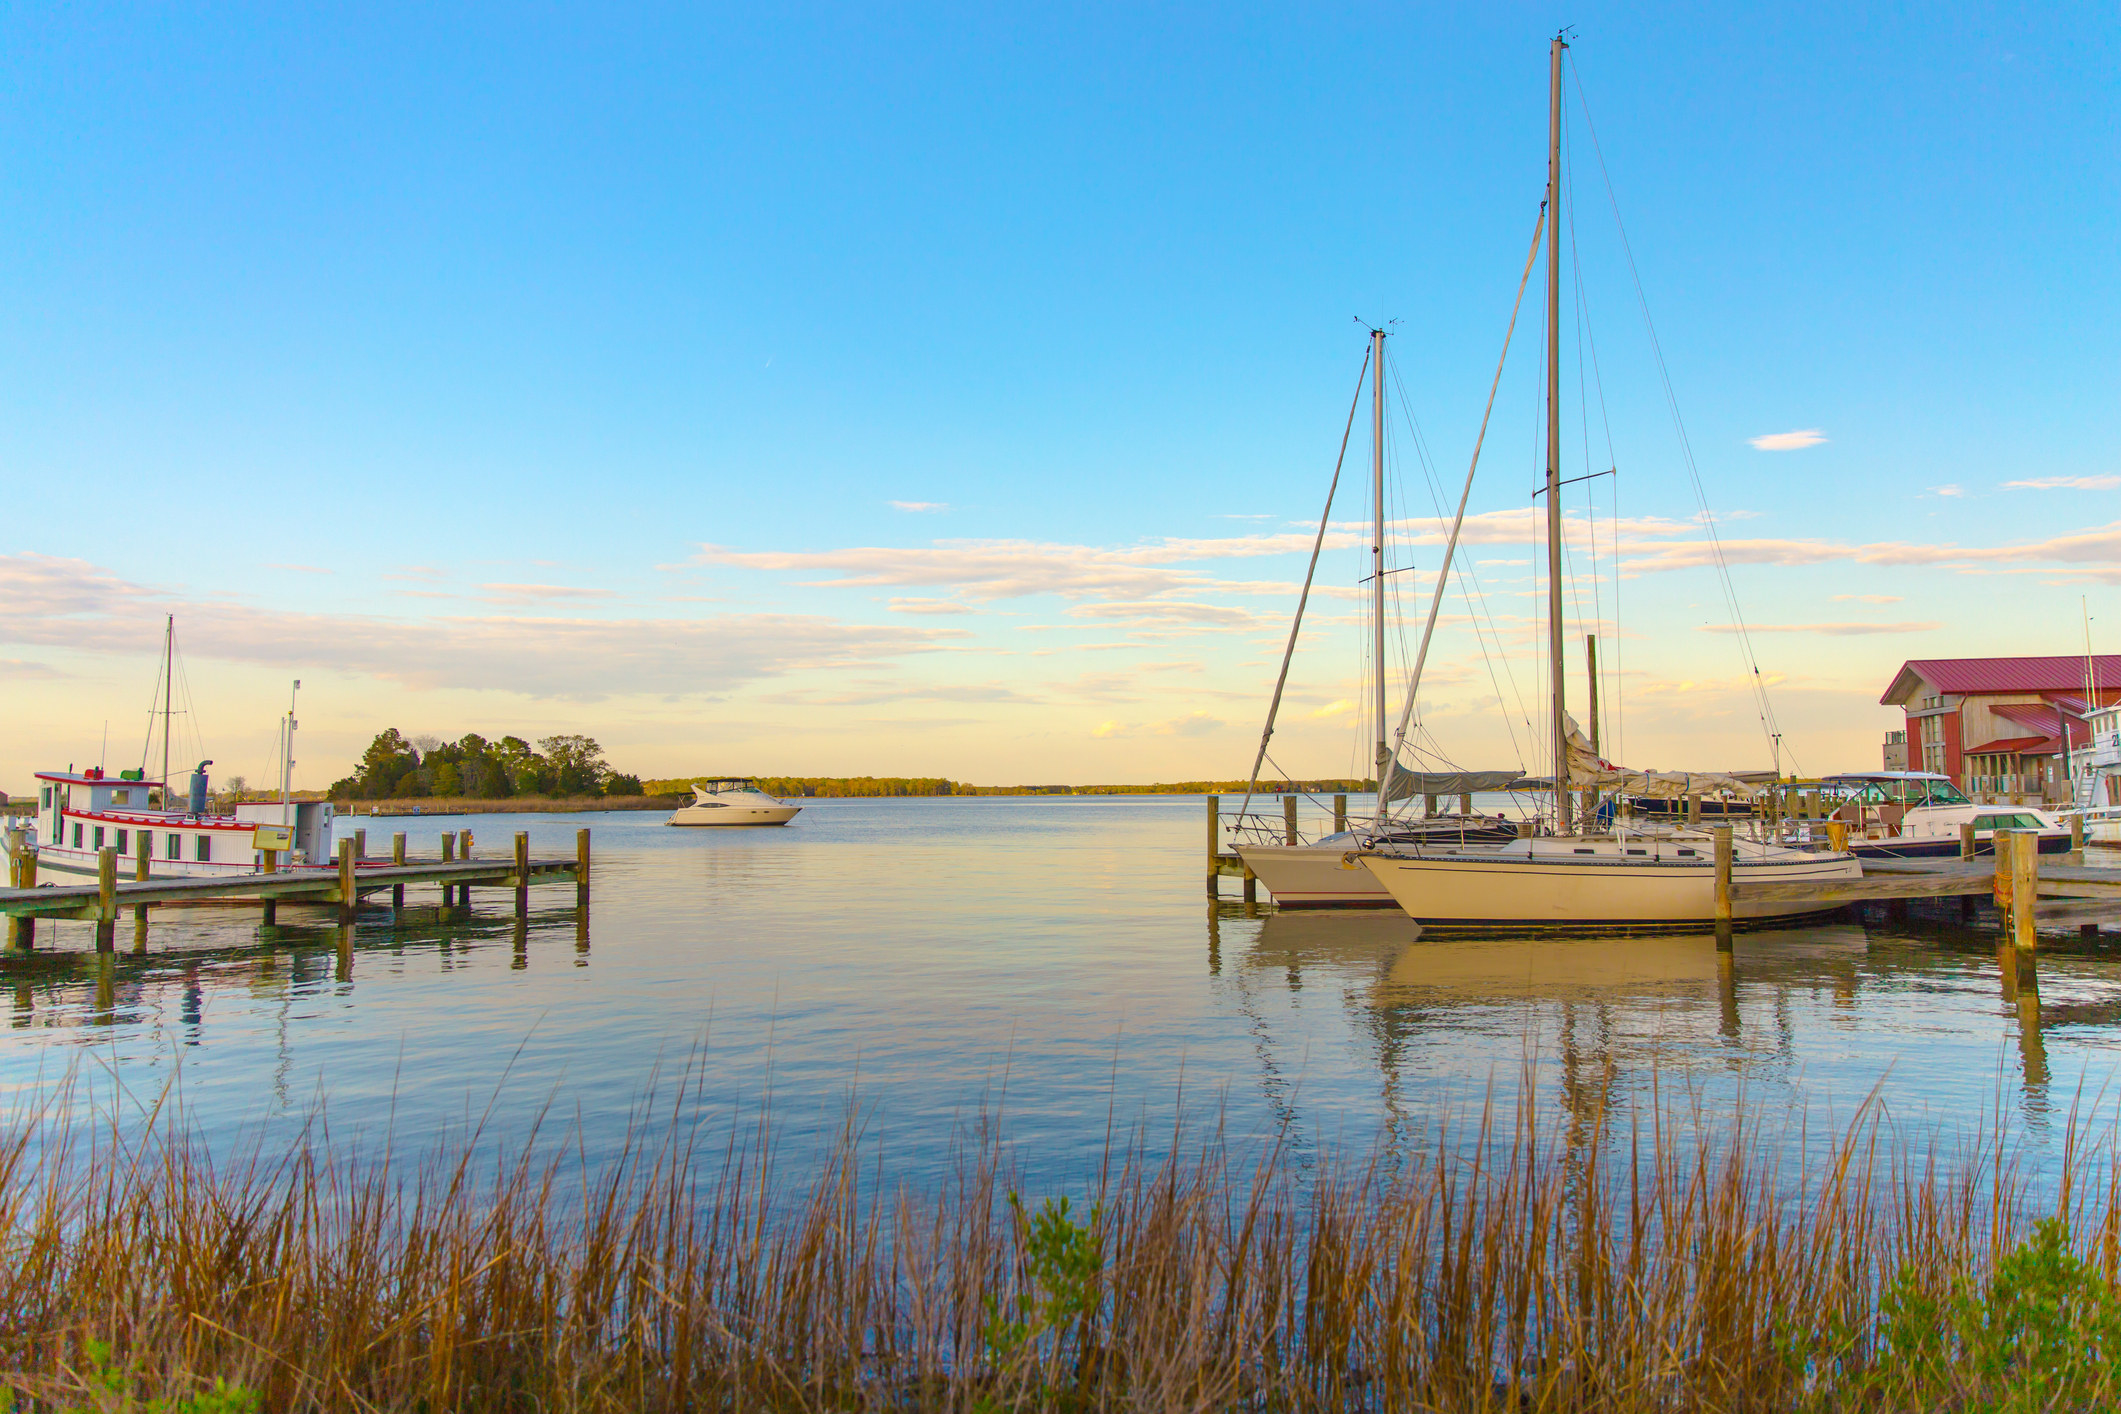 A view of the Chesapeake Bay from Saint Michaels, Maryland.